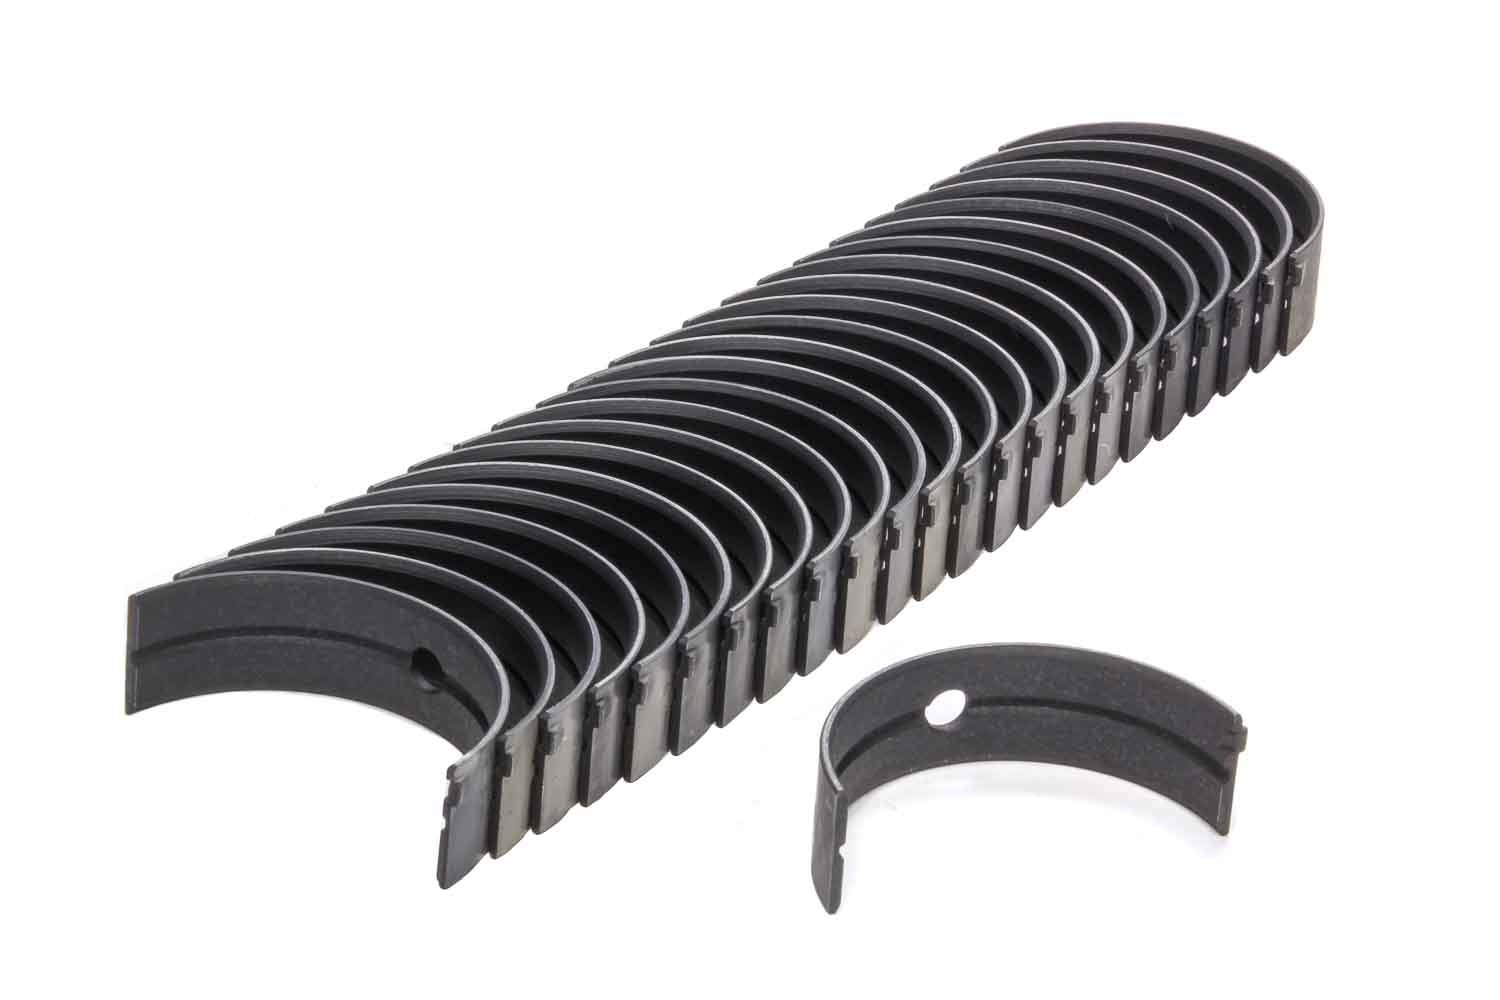 Upper Main Bearings Only 24pcs. Coated